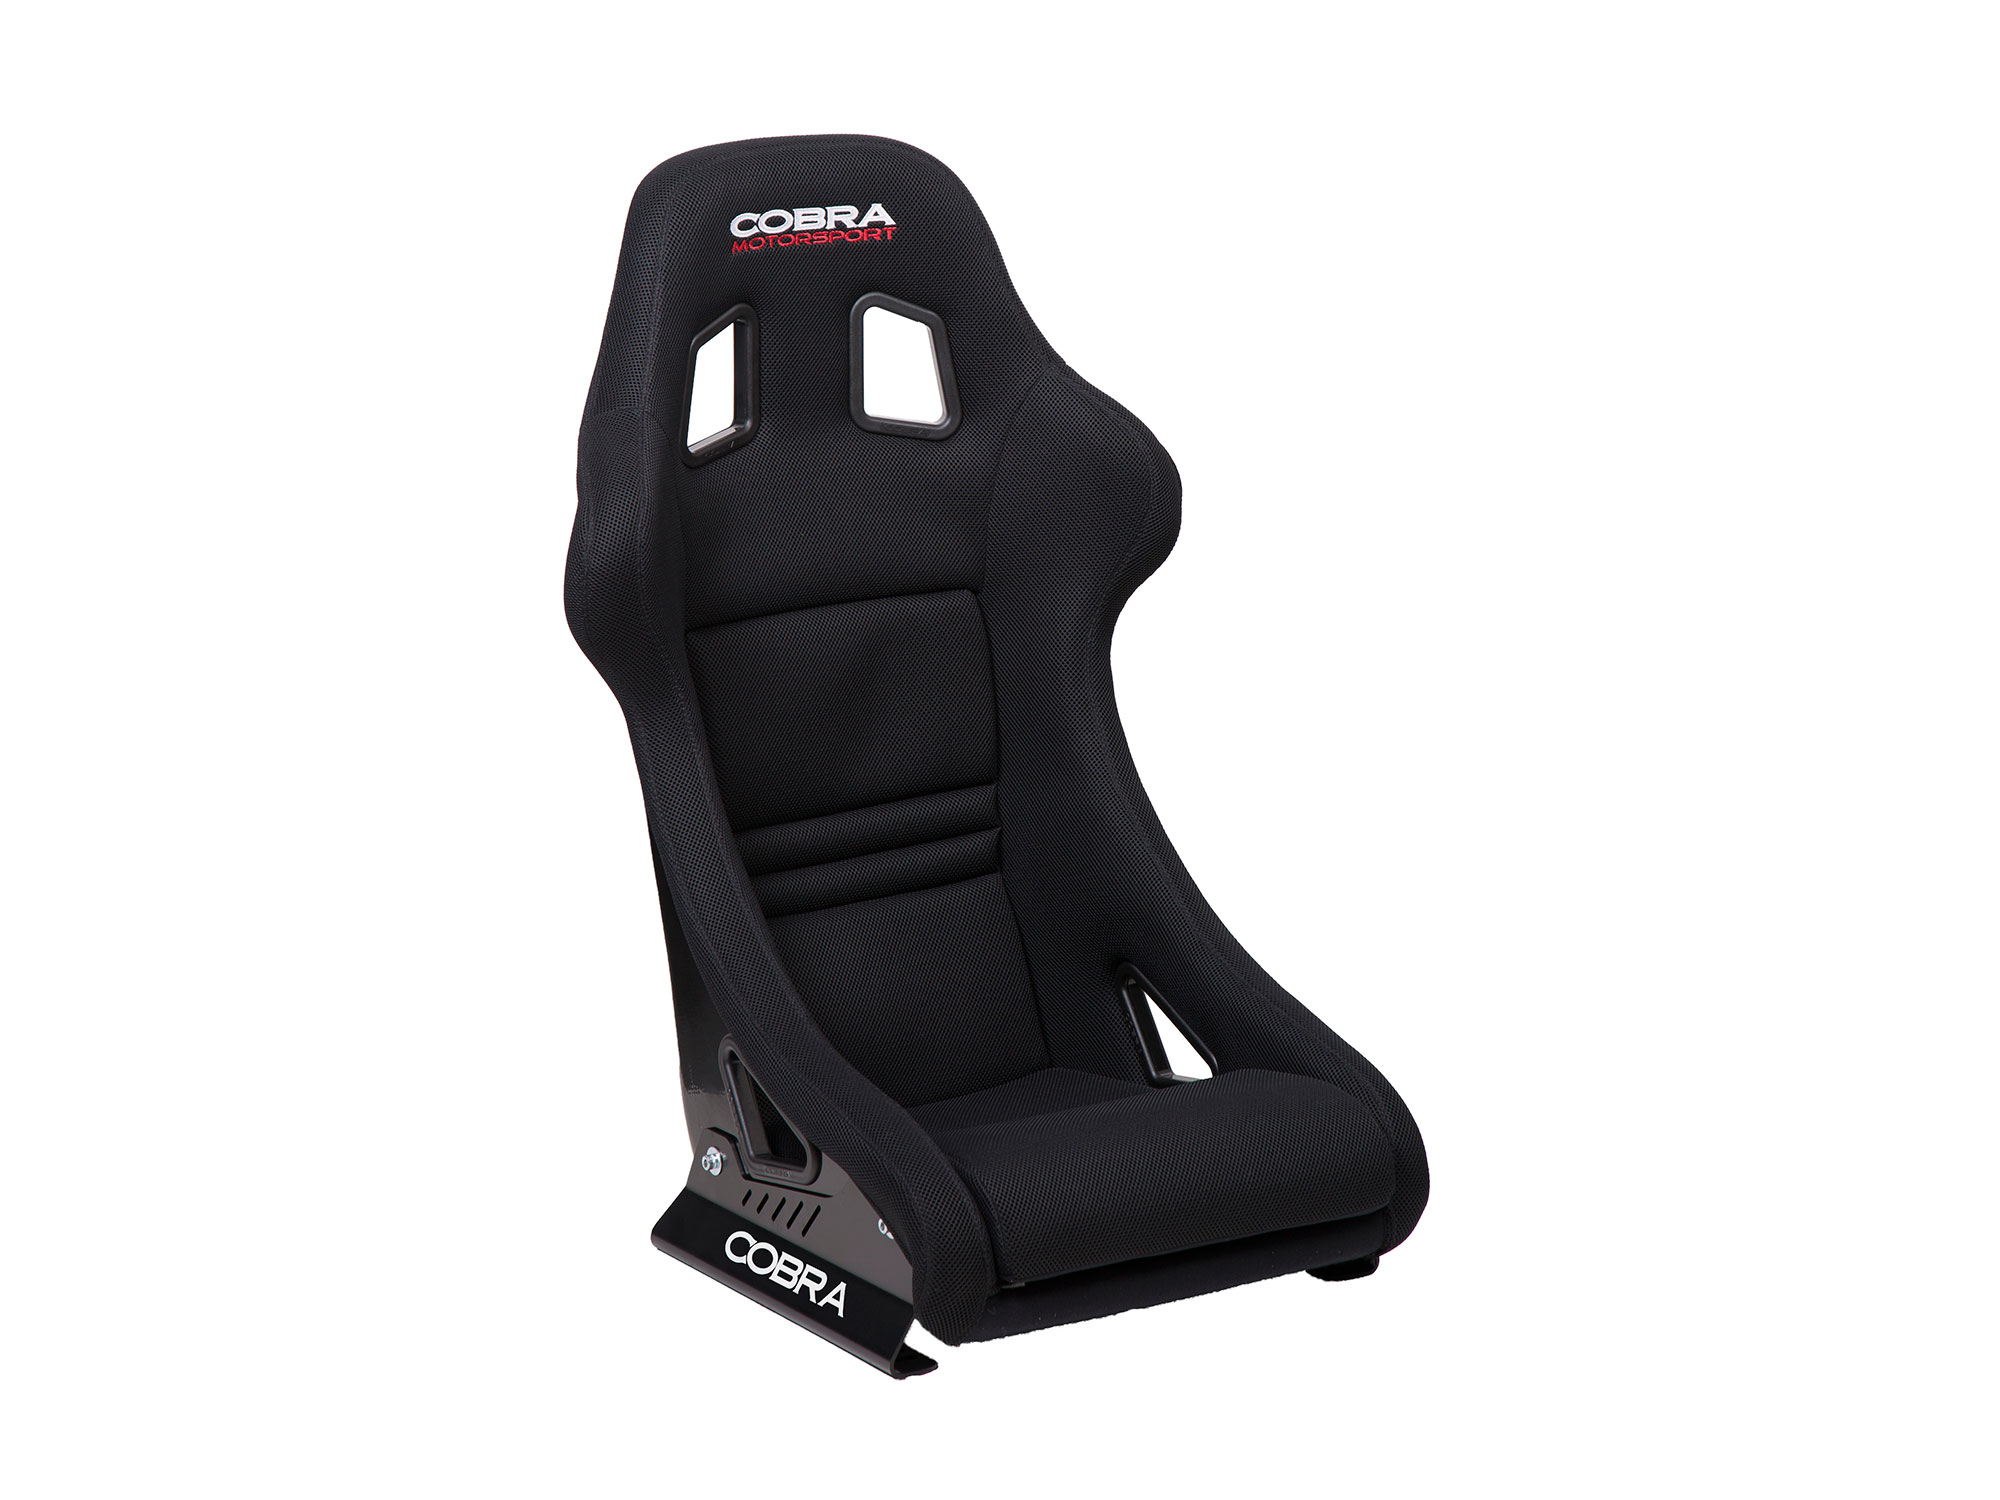 Cobra - Imola Pro-Fit Racing Seat MAIN